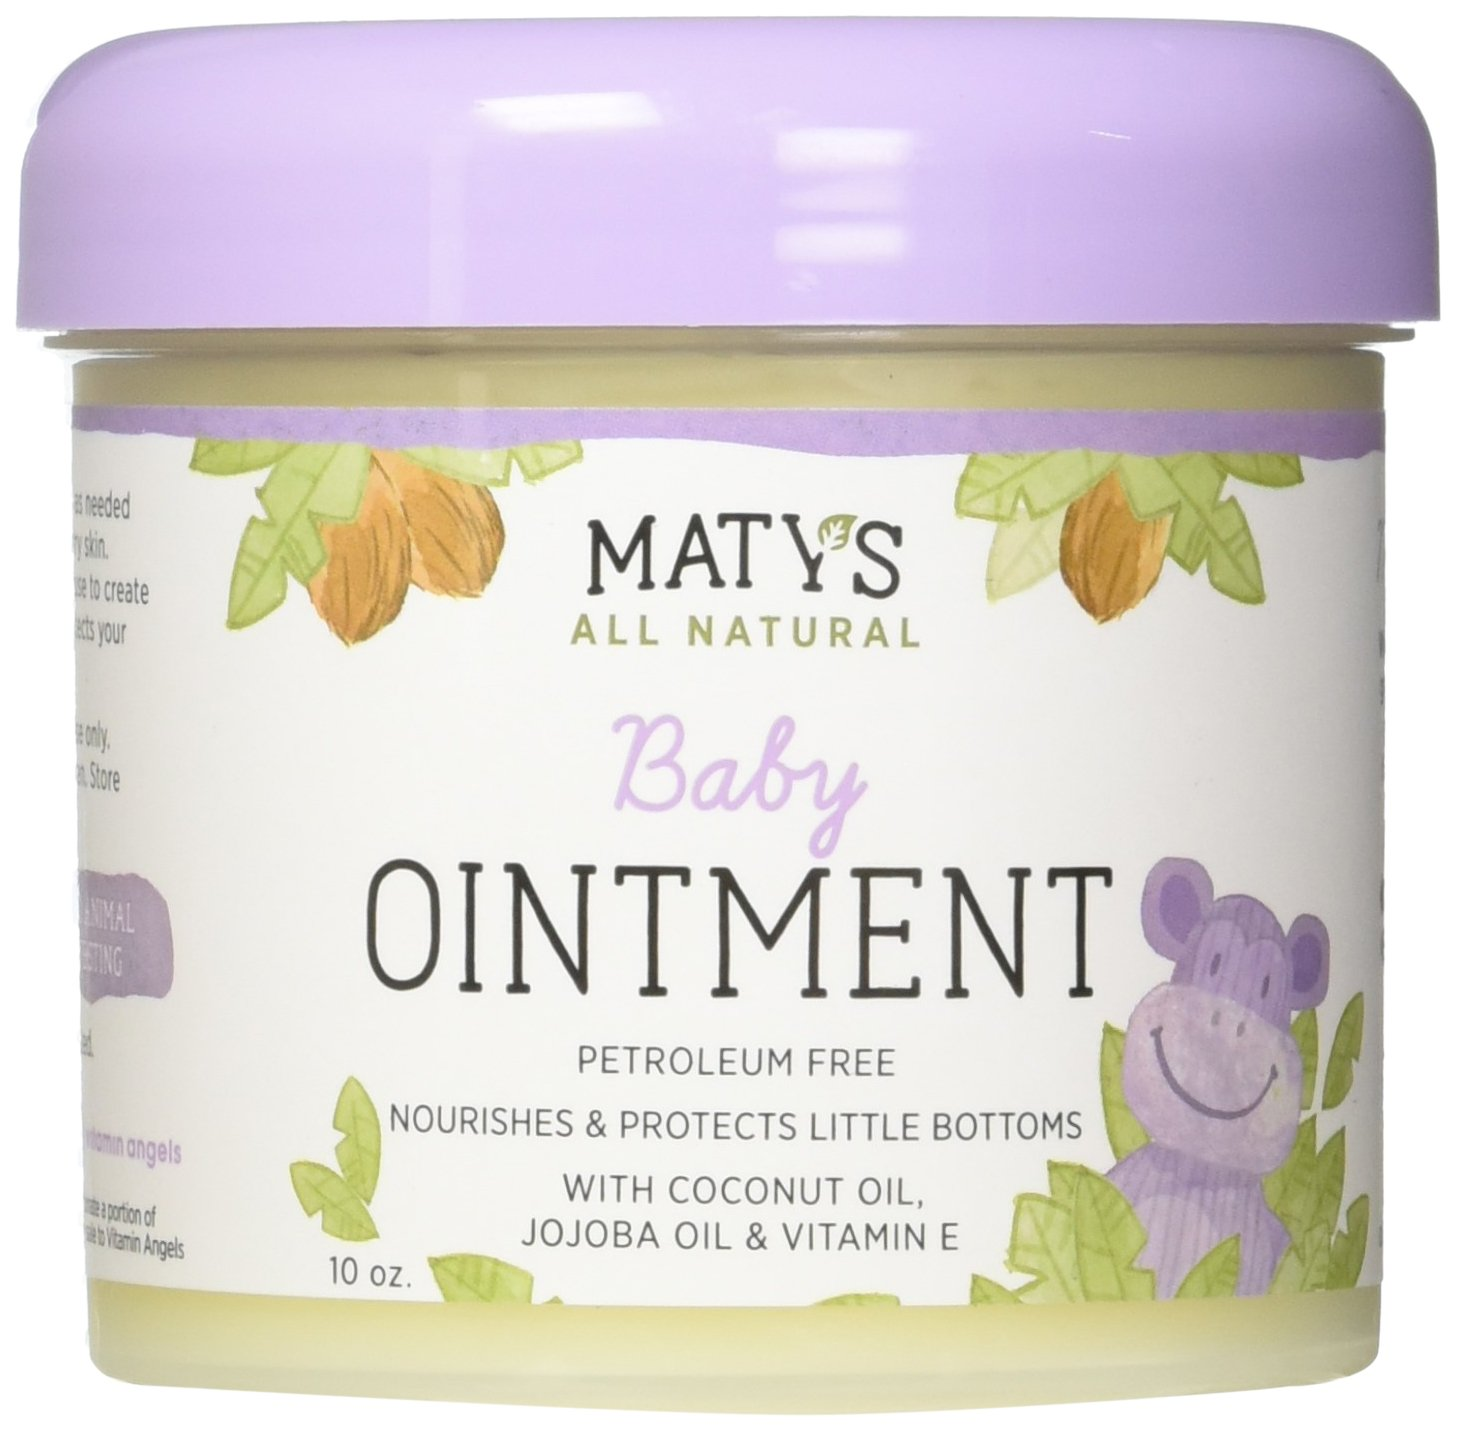 Matys All Natural Baby Ointment, 10 oz, Petroleum-Free, Safe for Cloth Diapers, Natural Alternative to Petroleum Based Diaper Rash Creams, Safe For Sensitive Skin, Chemical & Fragrance Free